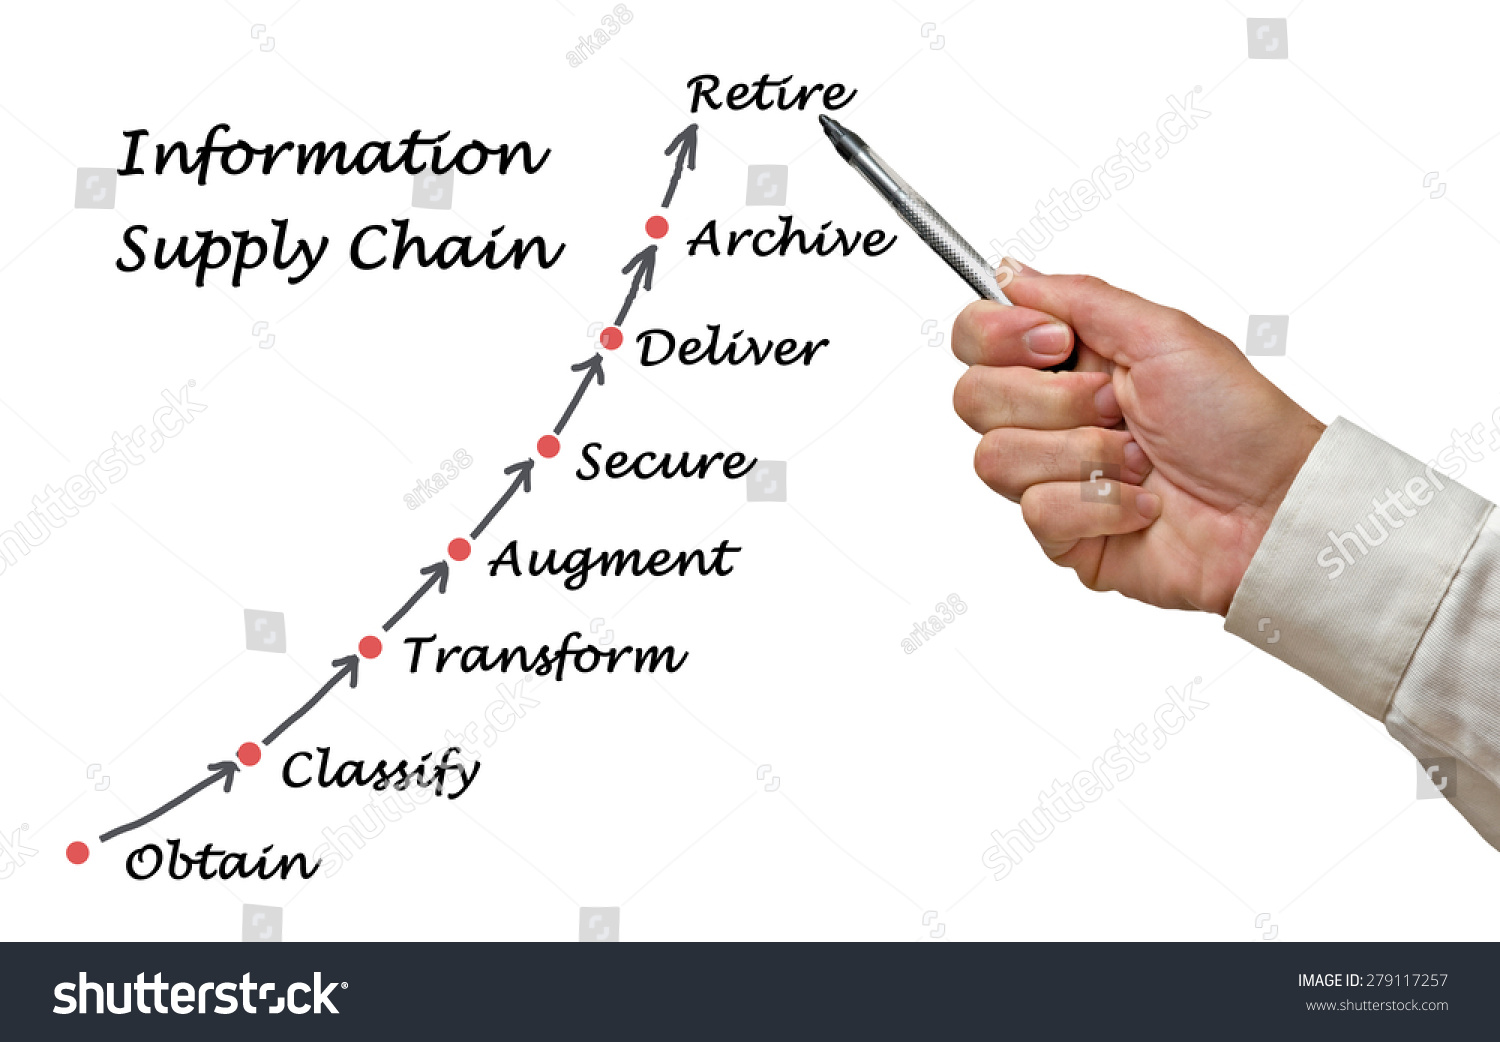 hight resolution of diagram of information supply chain